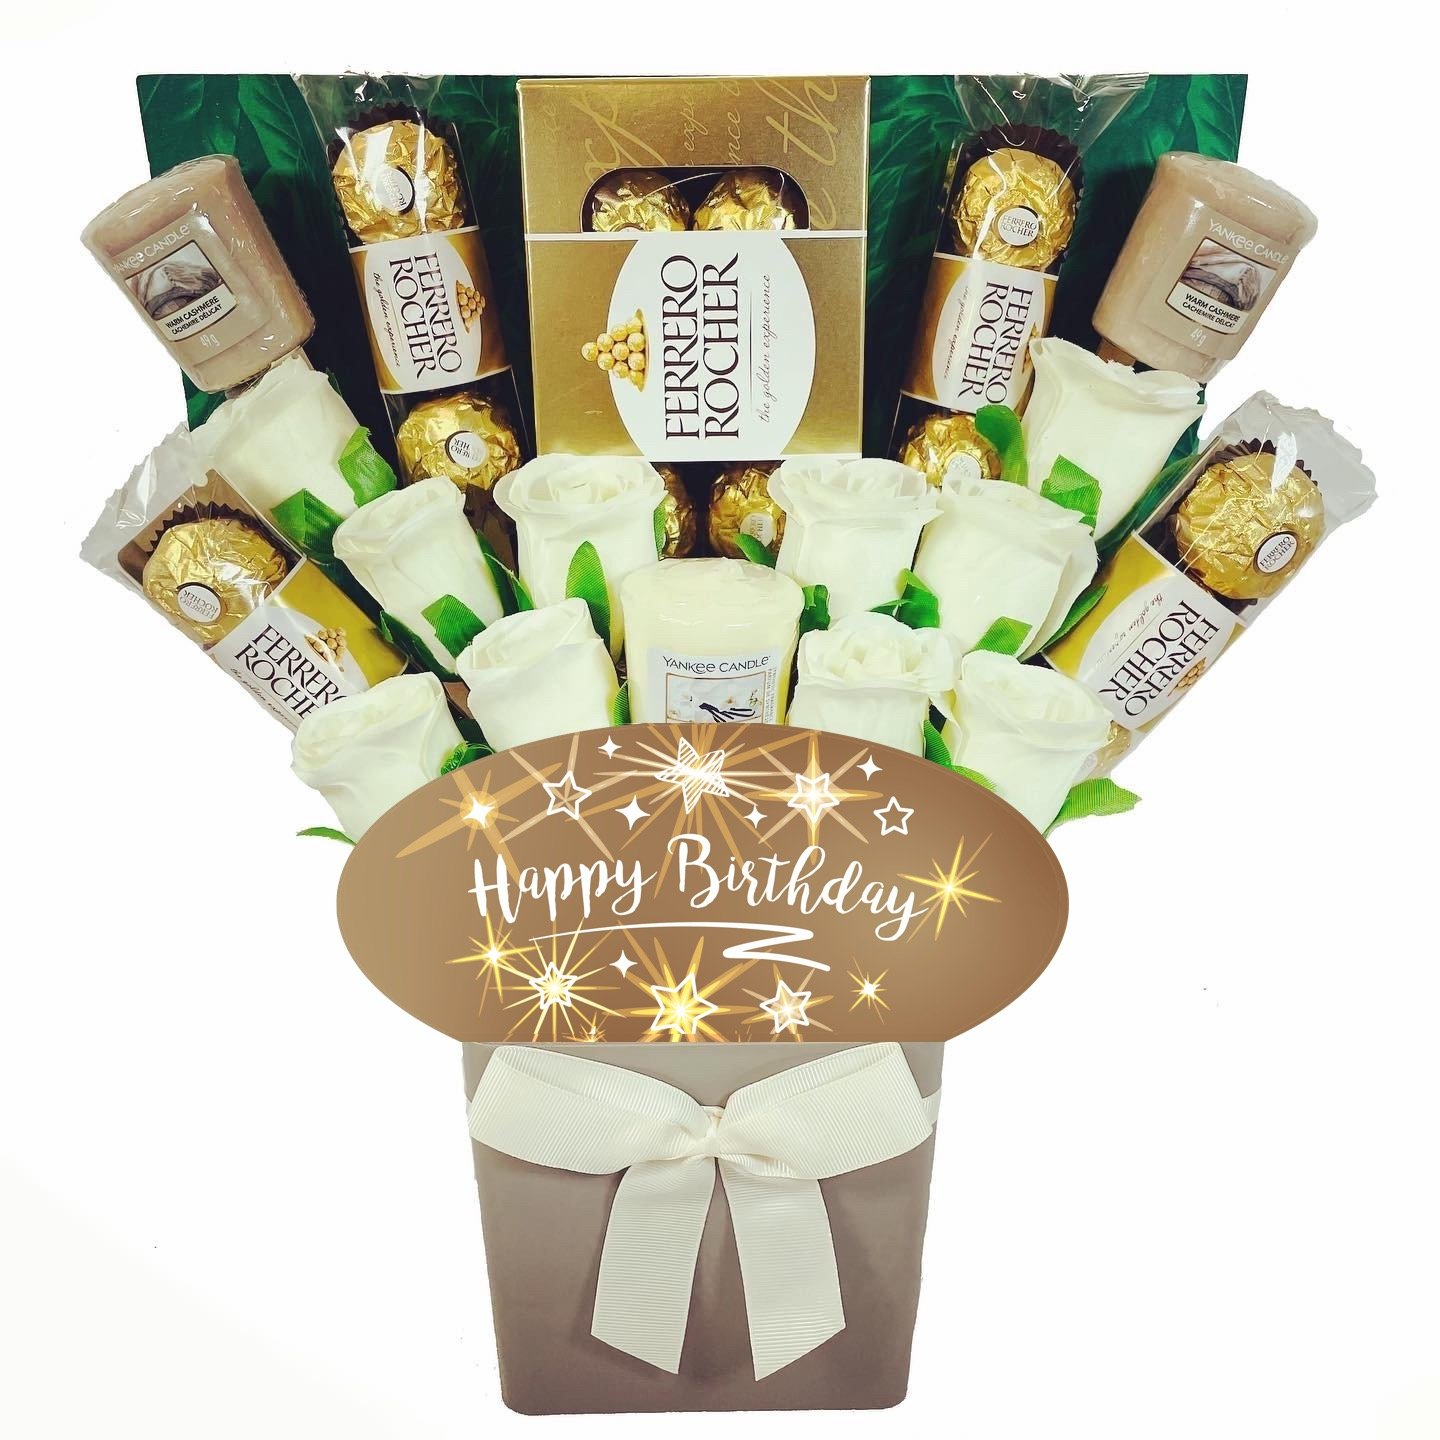 The Happy Birthday Yankee Candle and Ivory Rose Bouquet